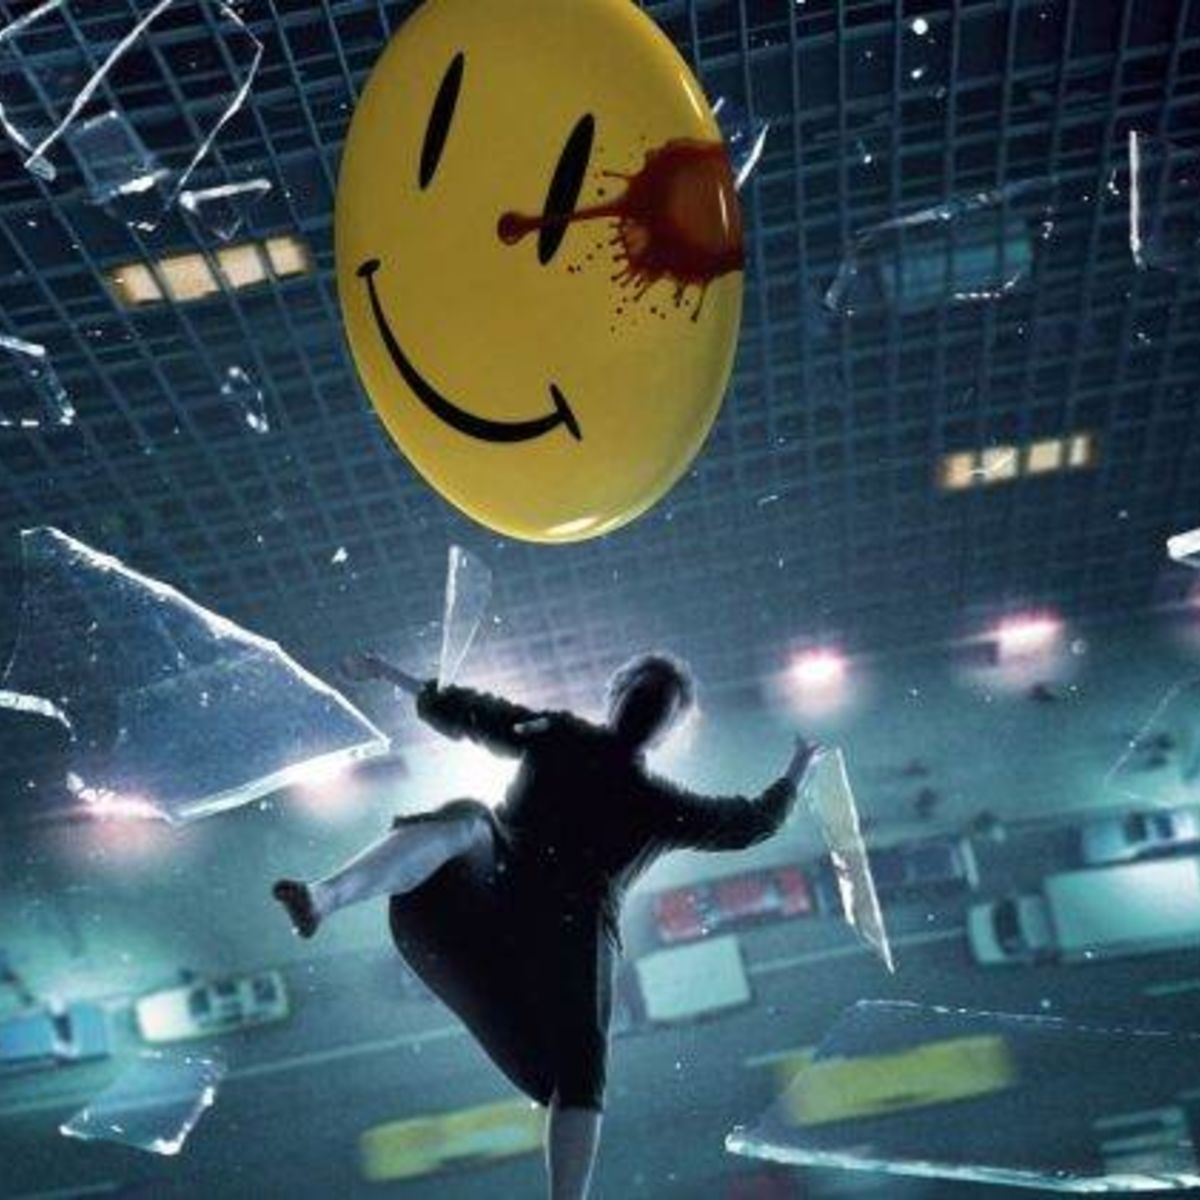 54126-movies-Watchmen-Jeffrey_Dean_Morgan-Edward_Blake-The_Comedian-falling-broken_glass-smiley-748x421.jpg